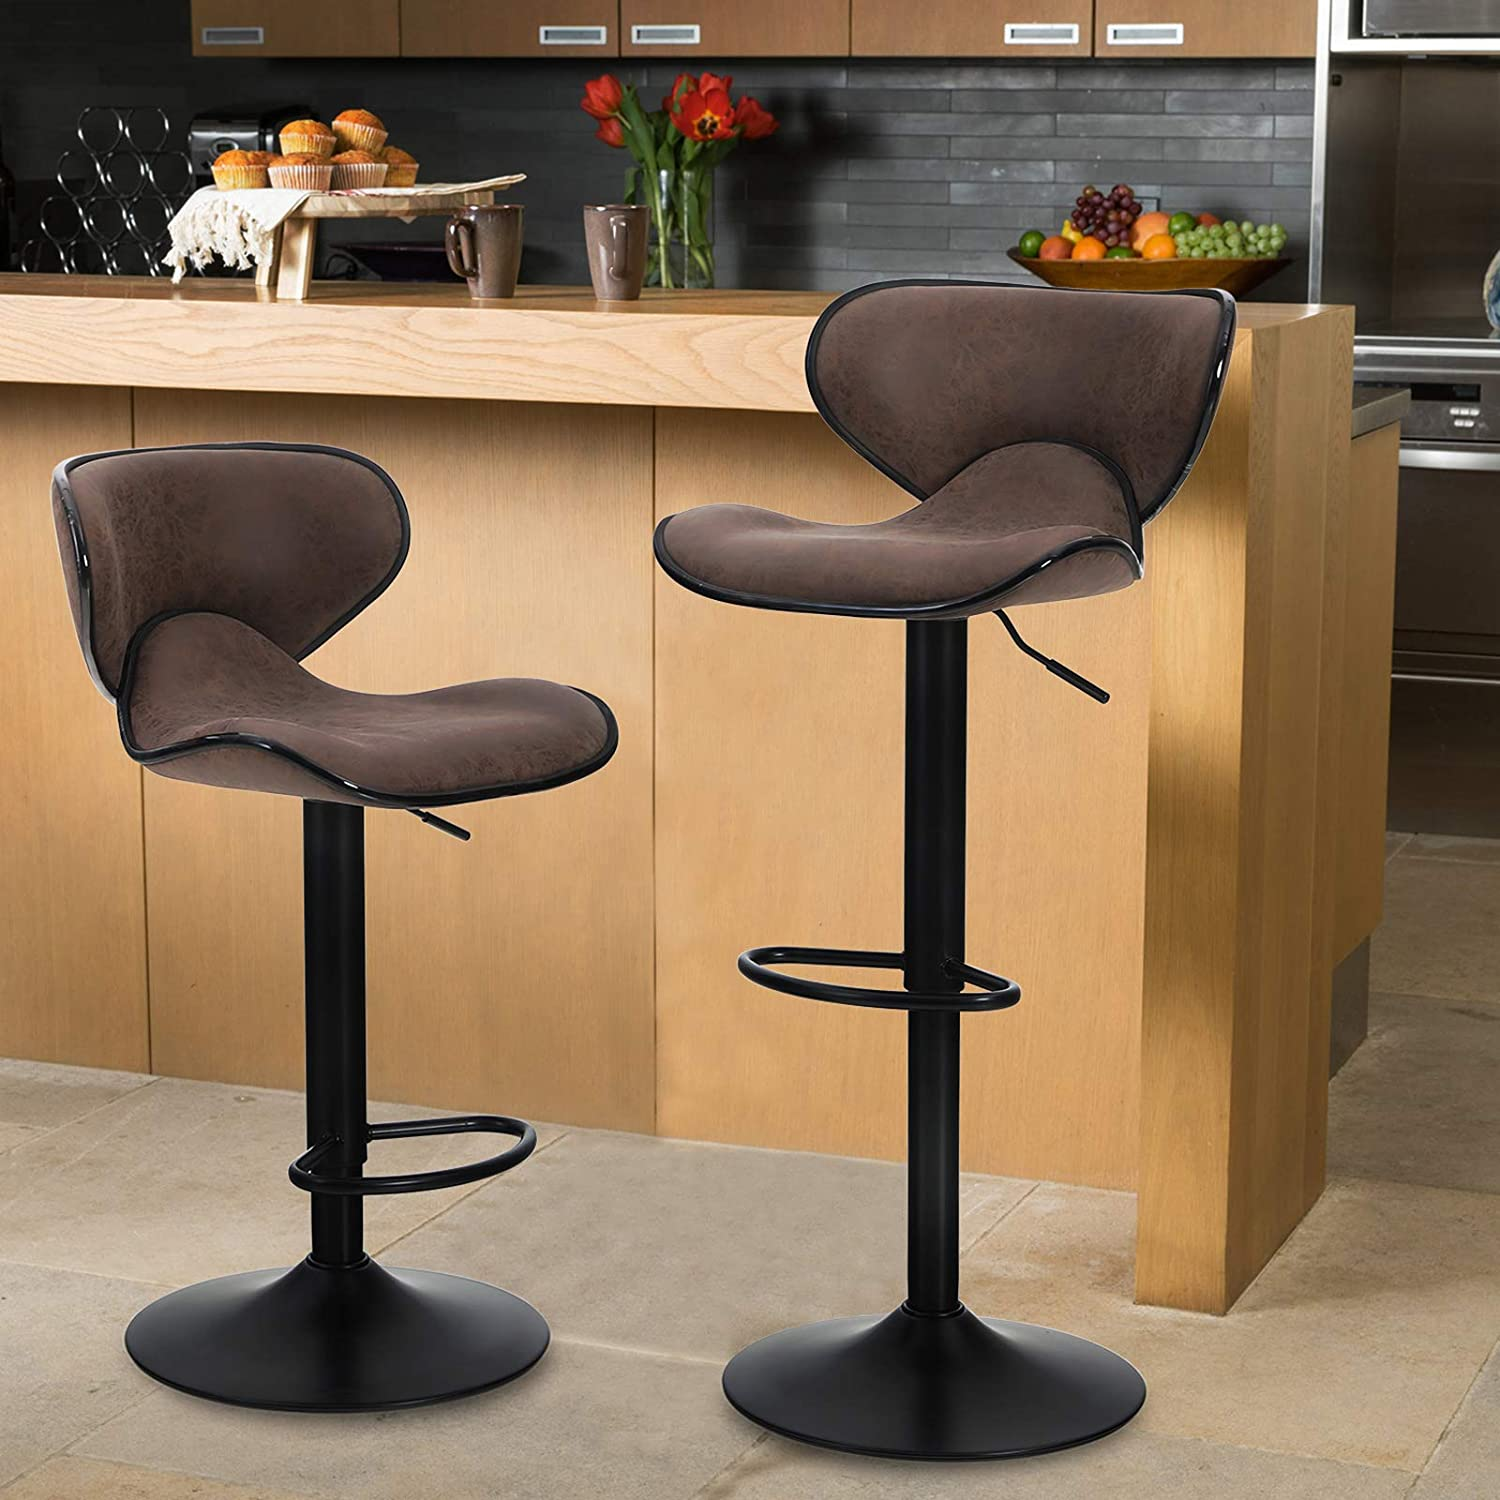 MAISON ARTS Counter Height Bar Stools Set of 9 Swivel Adjustable Barstools  with Back for Kitchen Counter Tall Bar Height Chairs Faux Leather High ...